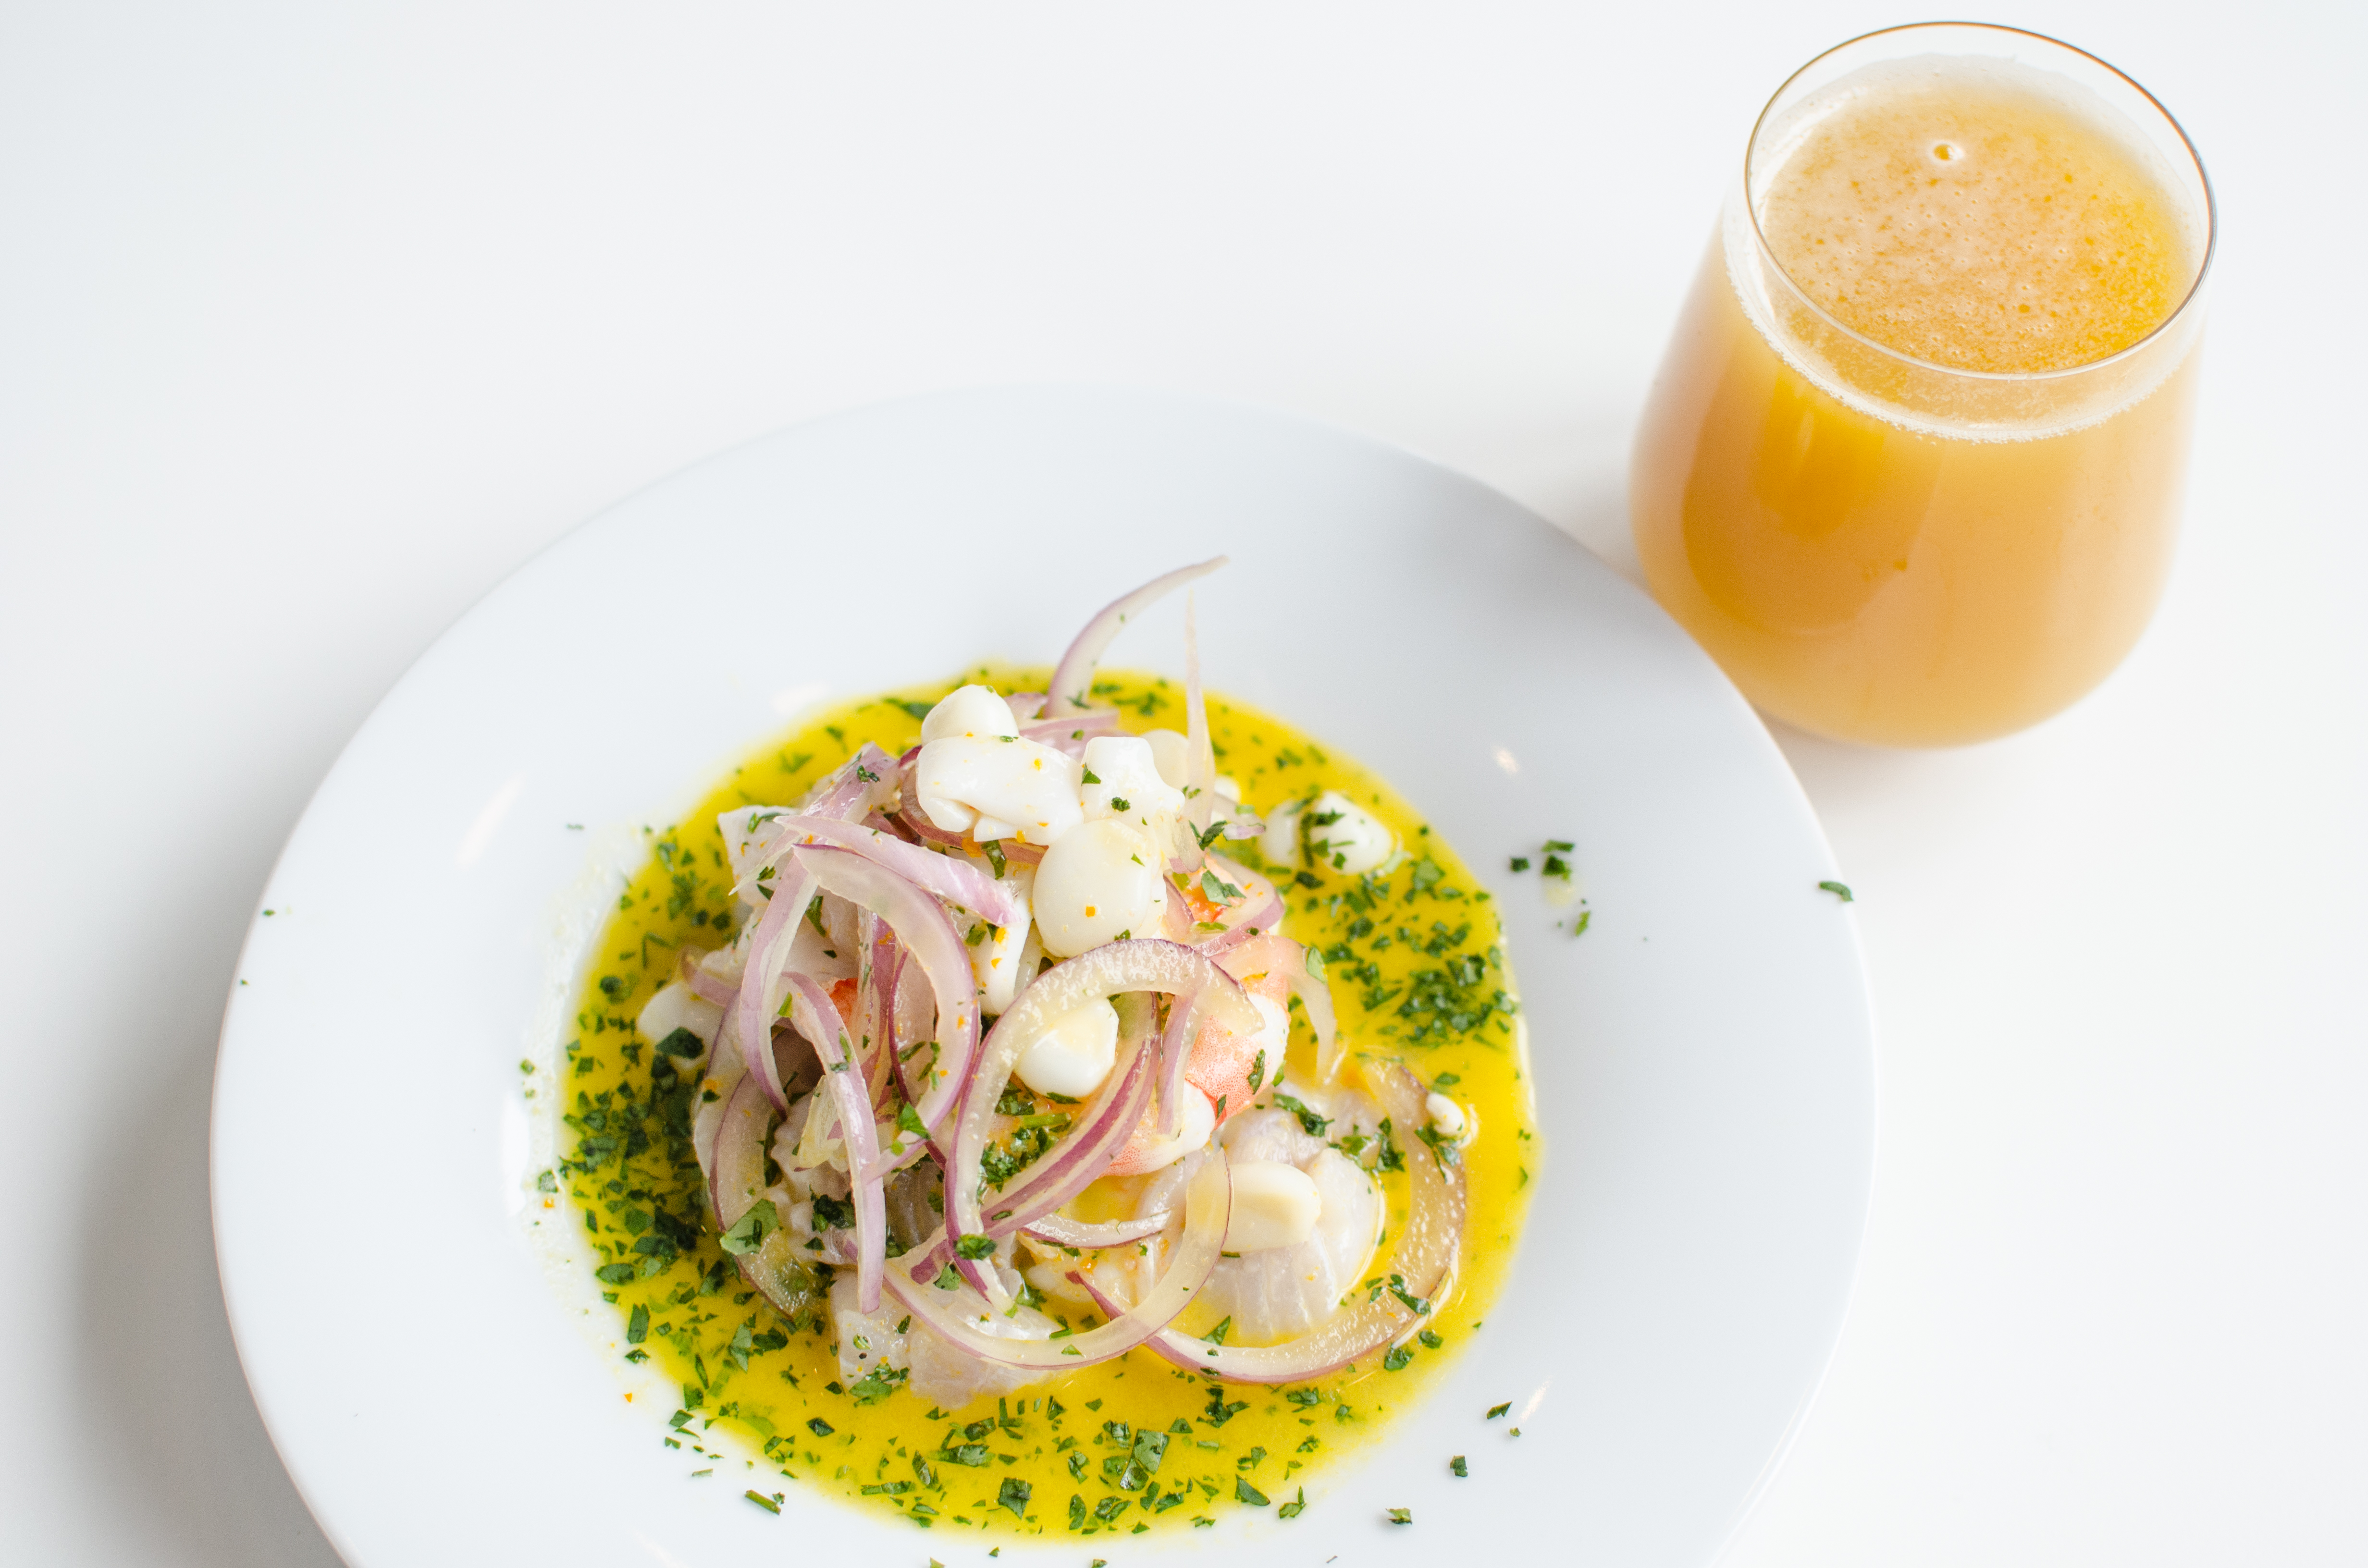 A vibrantly colored portion of ceviche is presented on a white plate on a white table, with a glass of beer on the side.